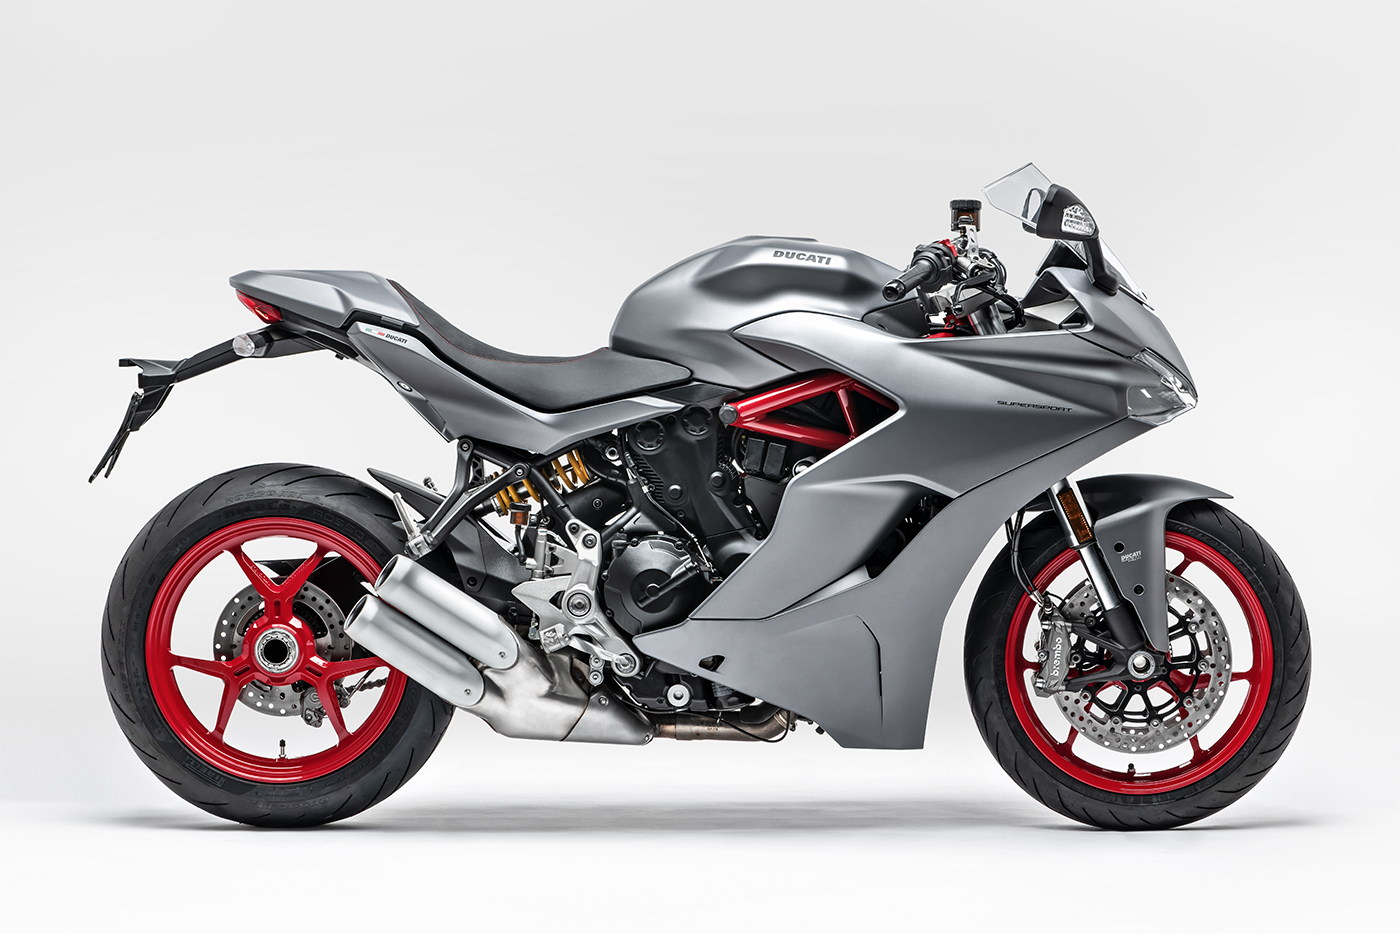 2018-ducati-supersport-titanium-grey-7.jpg